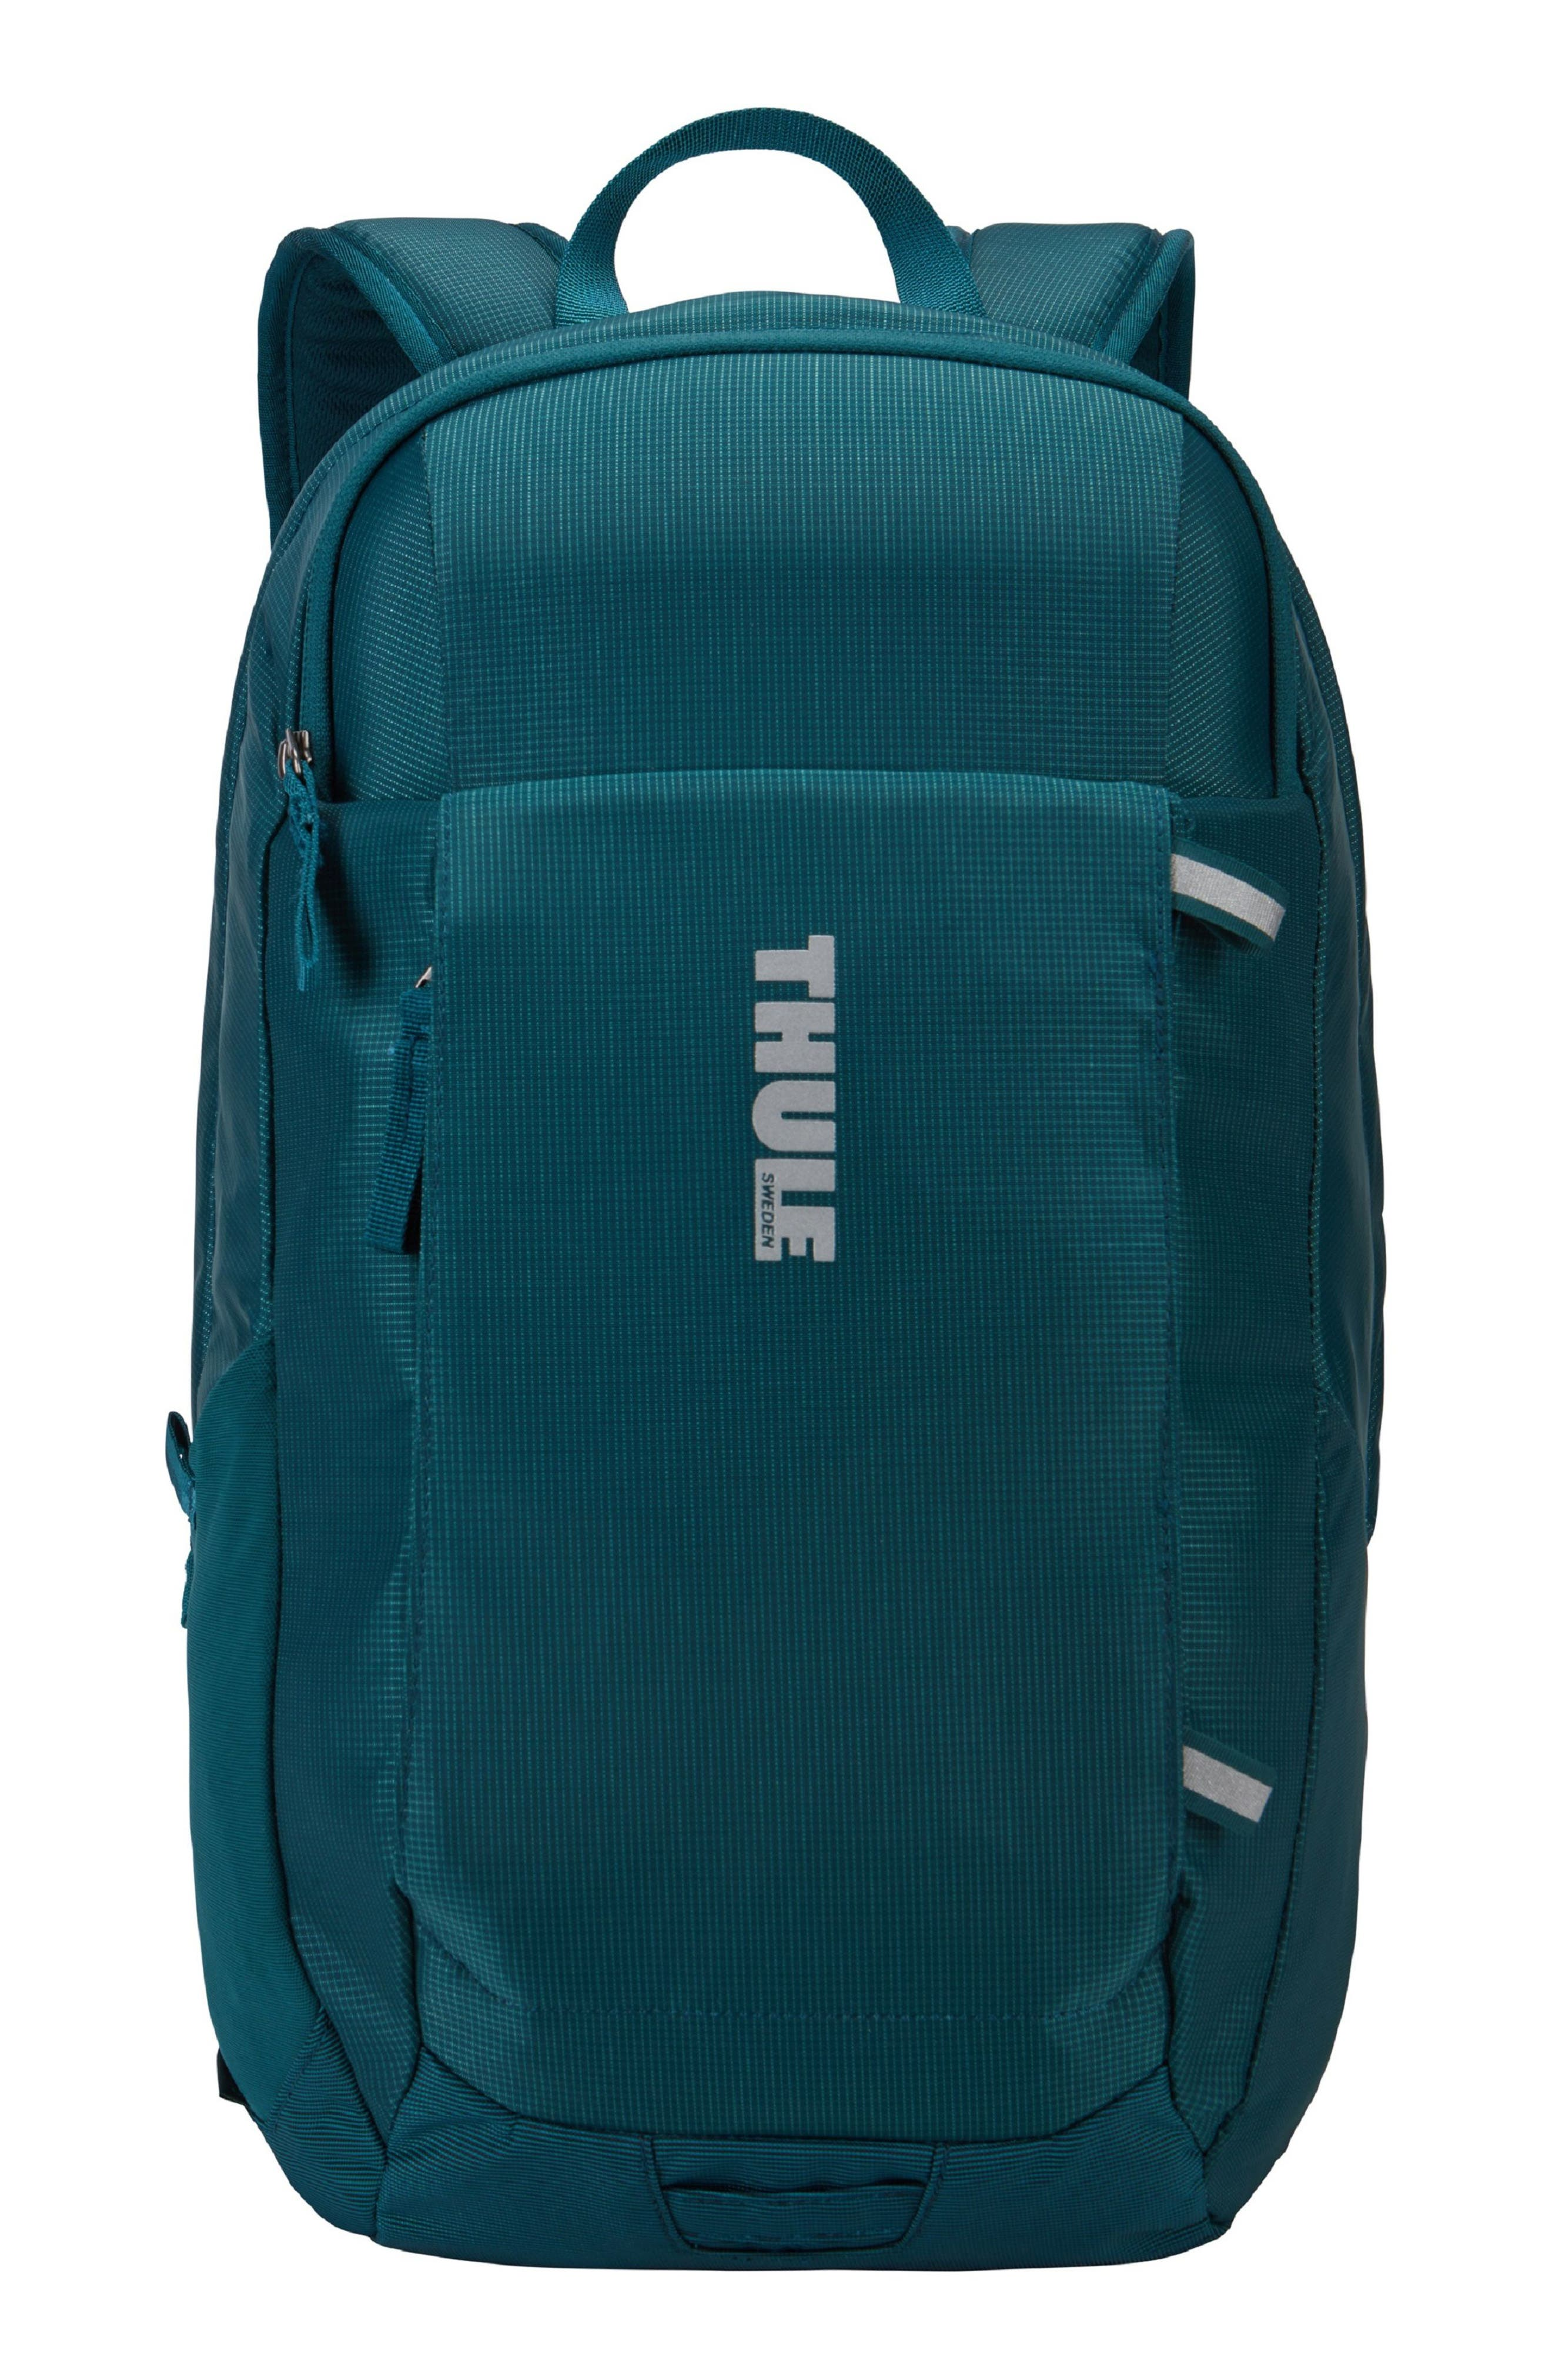 EnRoute Backpack,                             Main thumbnail 1, color,                             TEAL